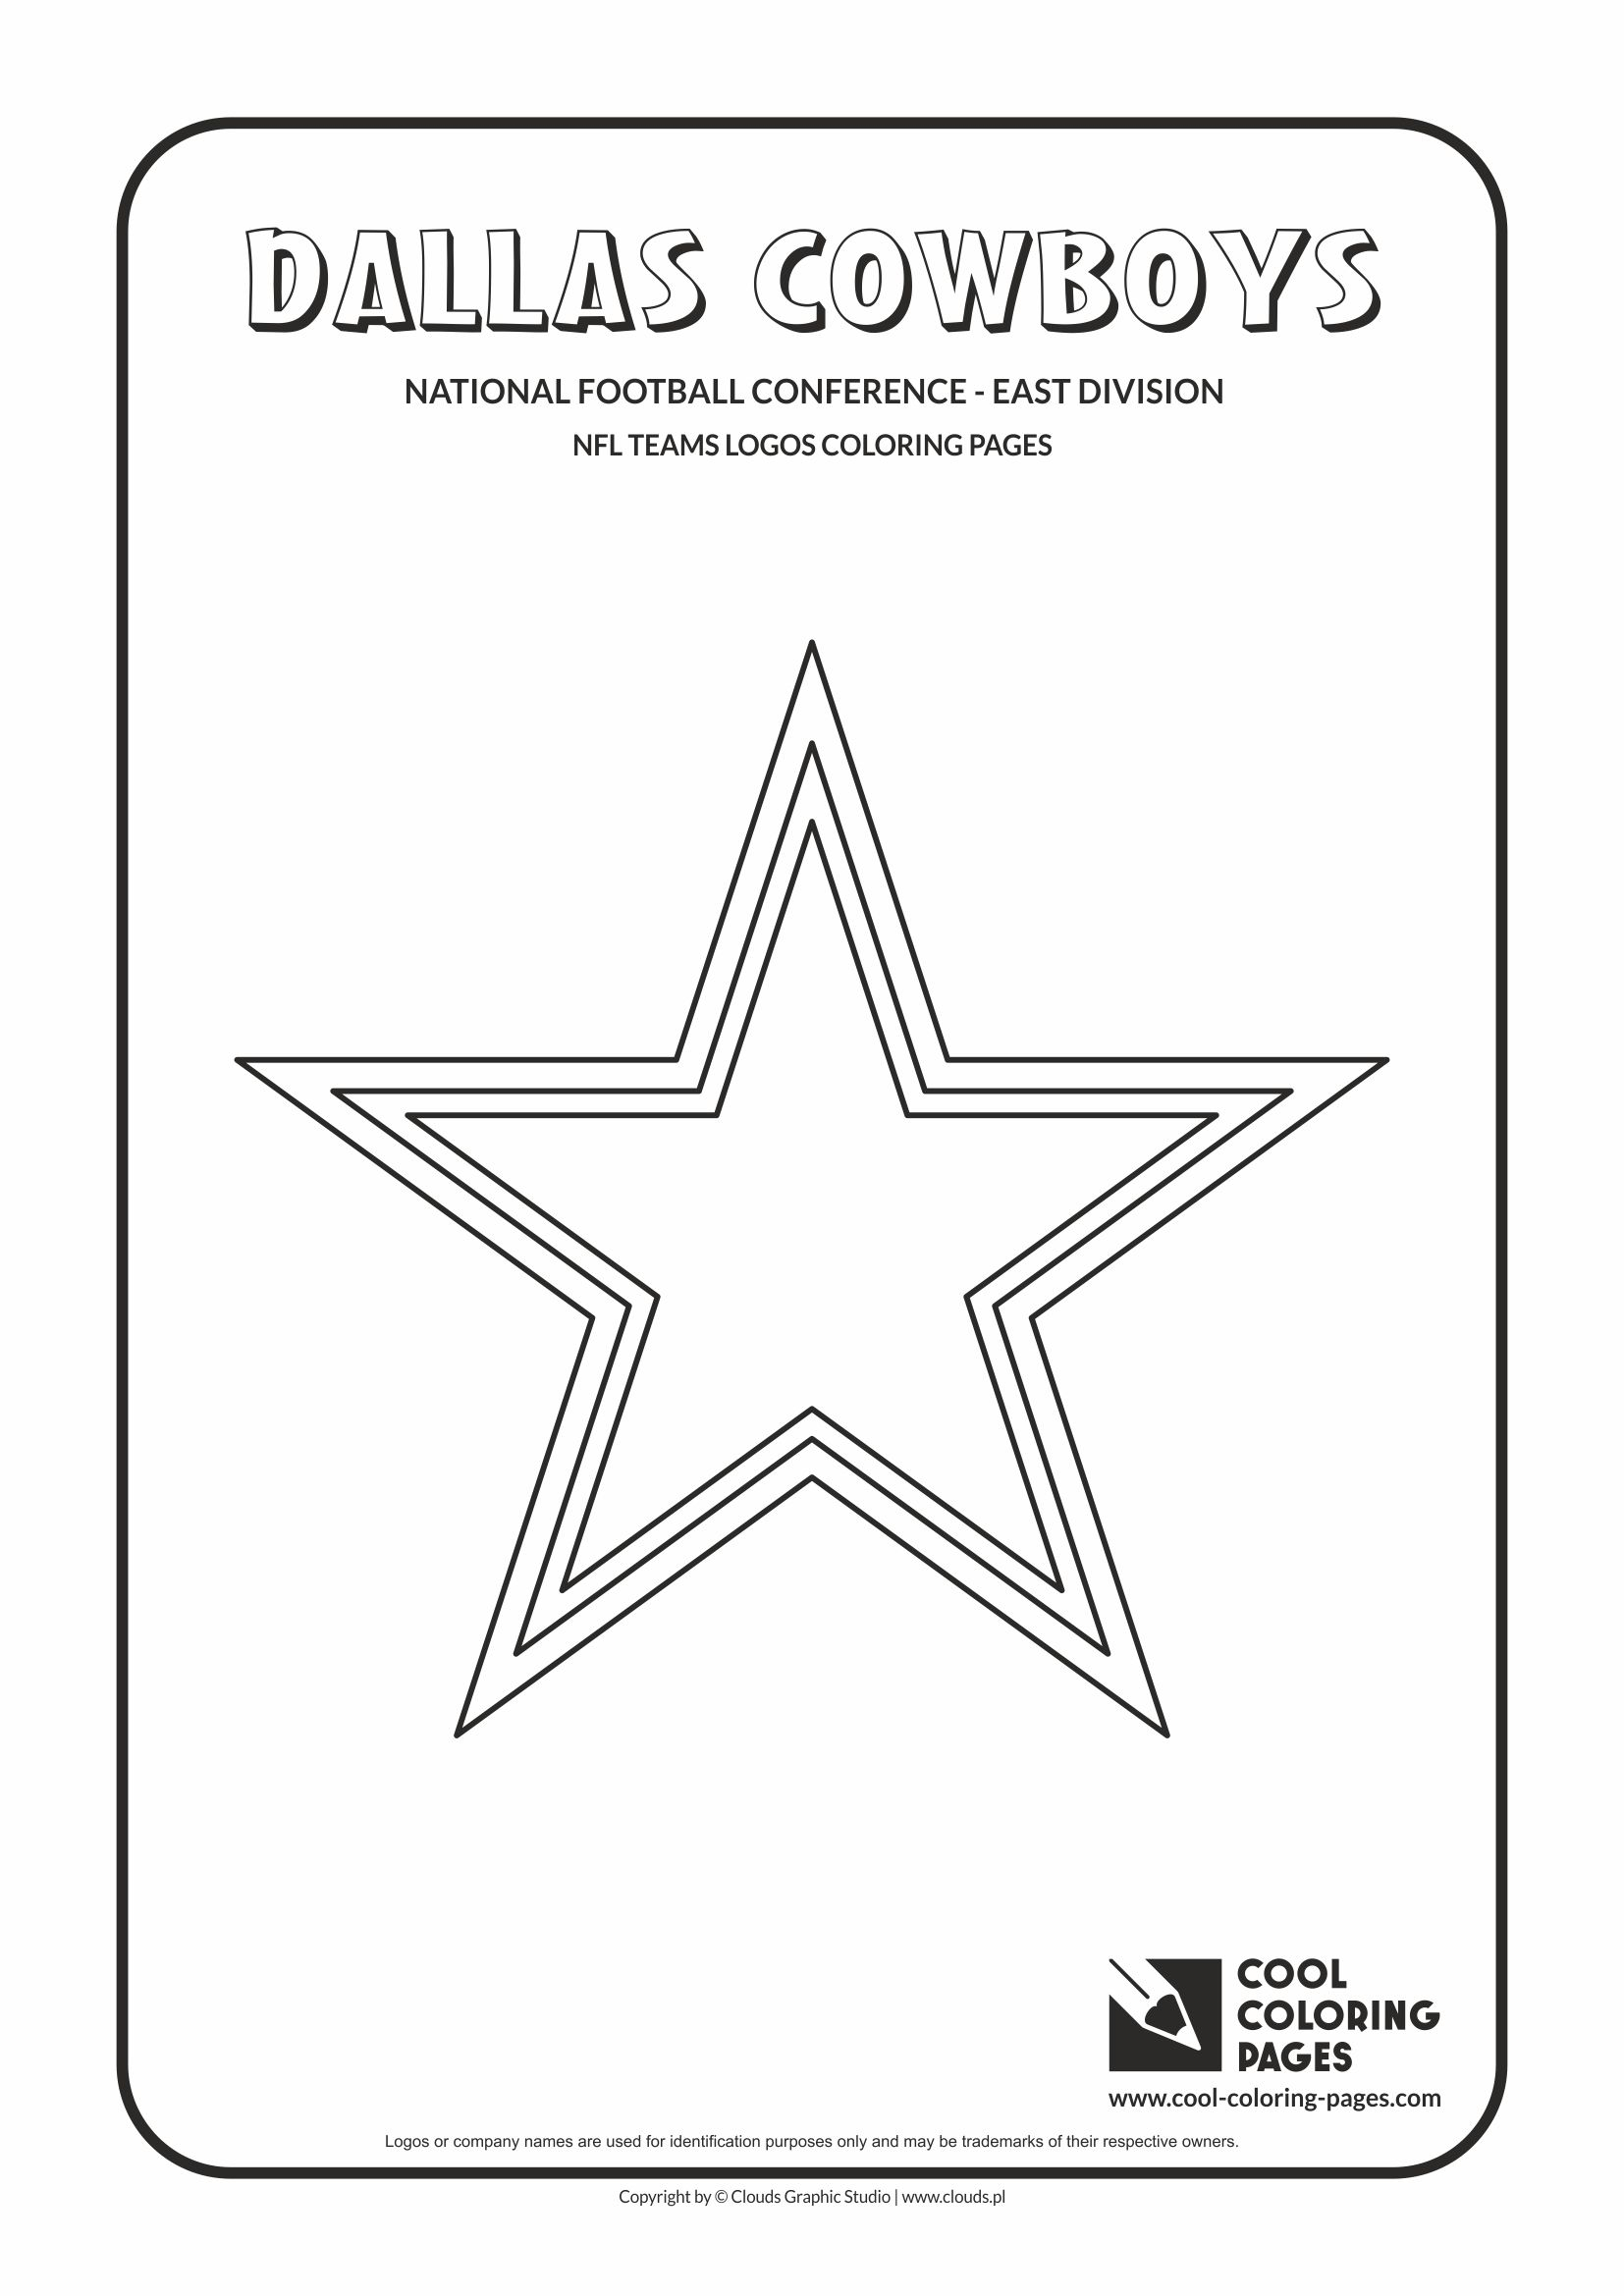 Football Color Pages Cool Coloring Pages Nfl Teams Logos Coloring Pages Cool Coloring